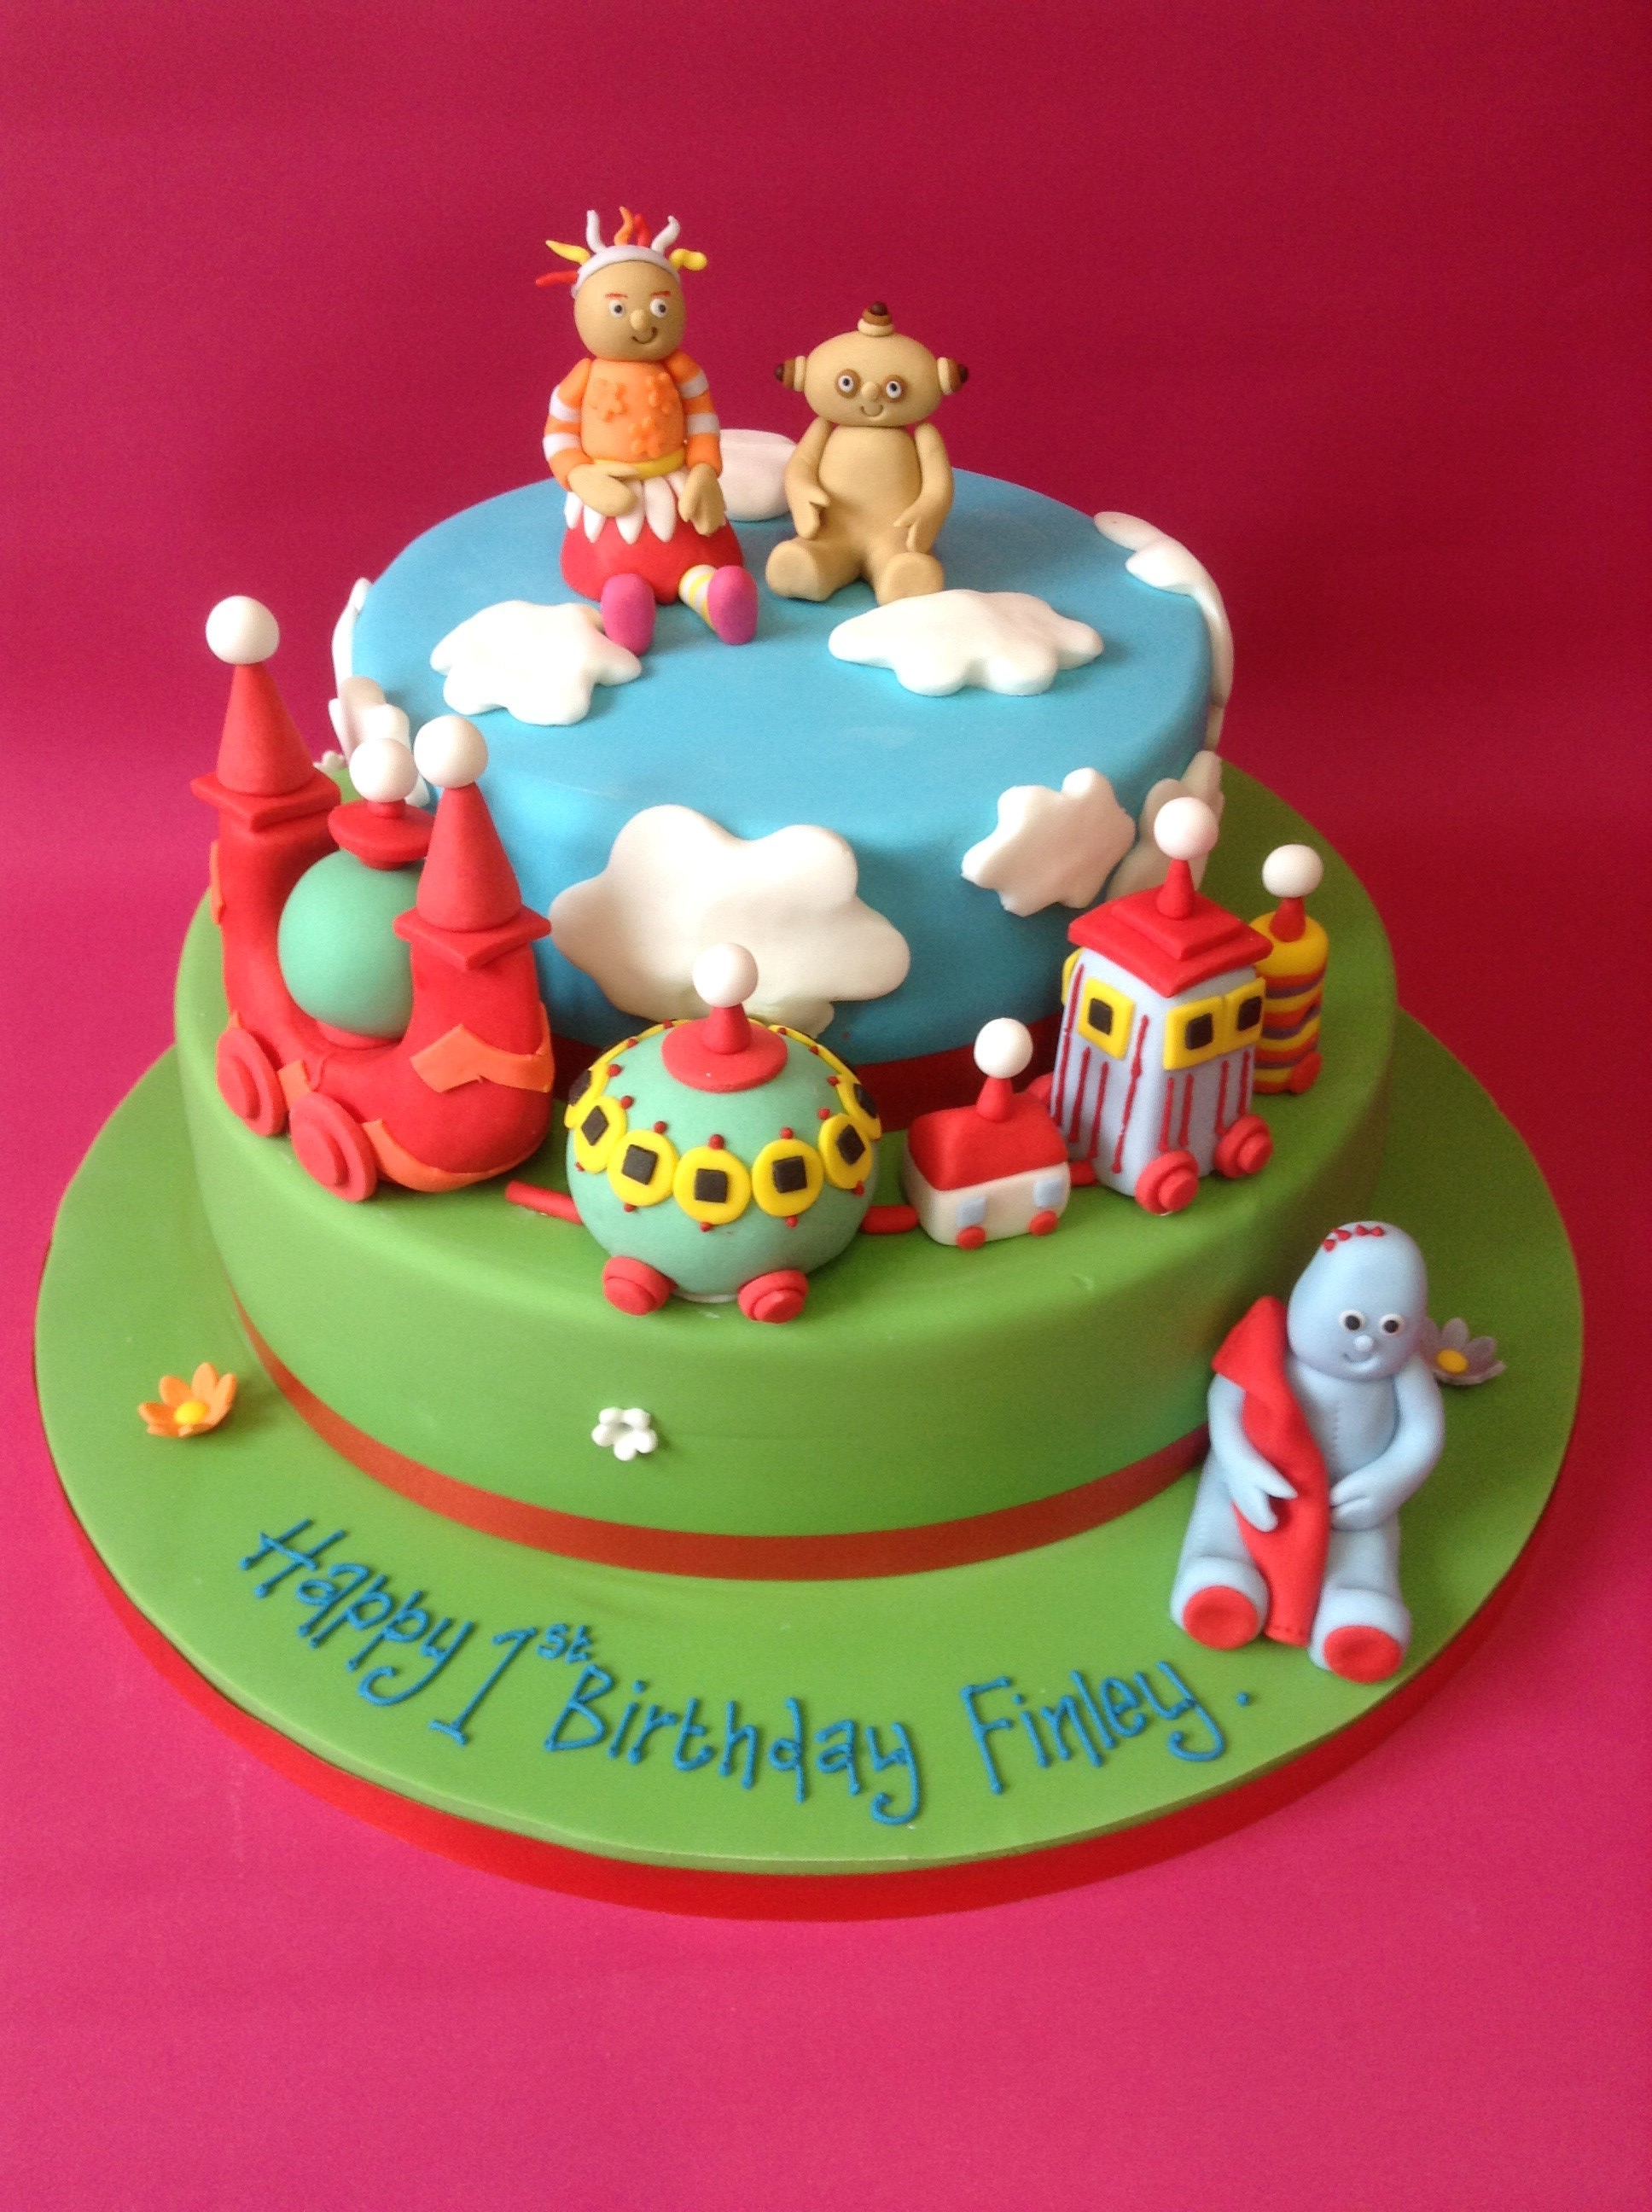 Groovy Childrens Birthday Cakes The Little Cake Cottage Funny Birthday Cards Online Elaedamsfinfo